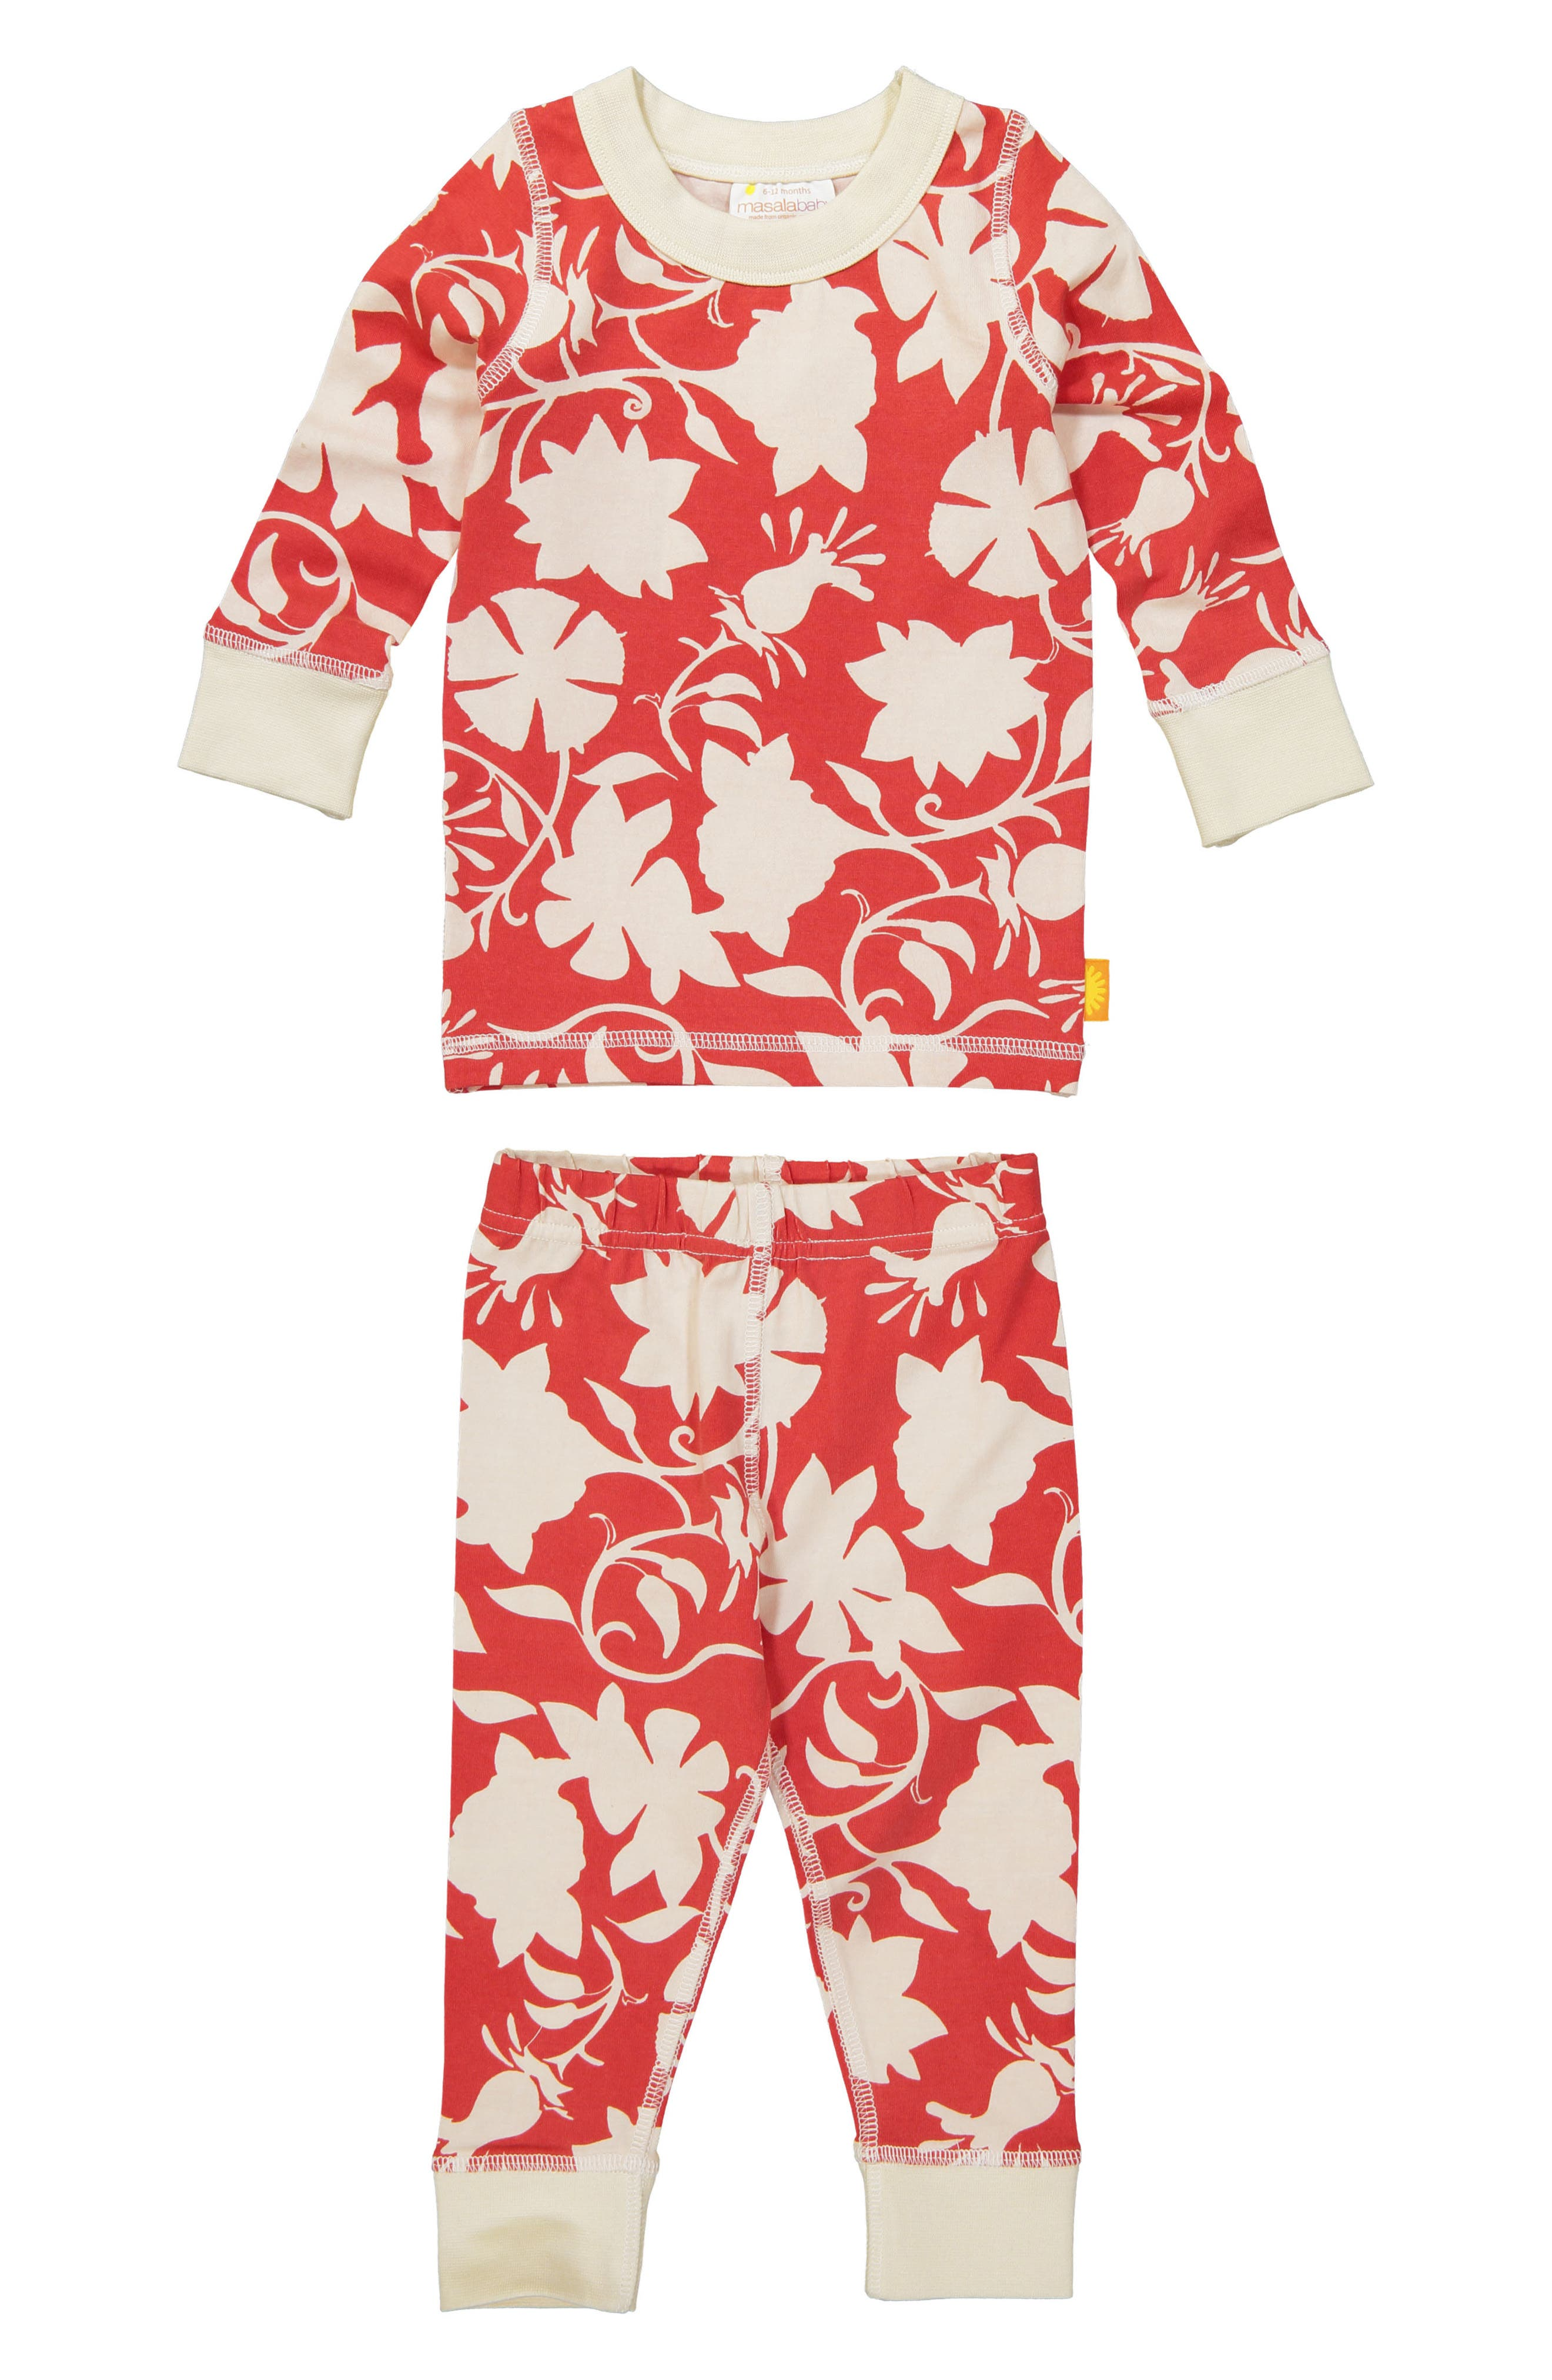 Jolie Organic Cotton Fitted Two-Piece Pajamas,                         Main,                         color, RED